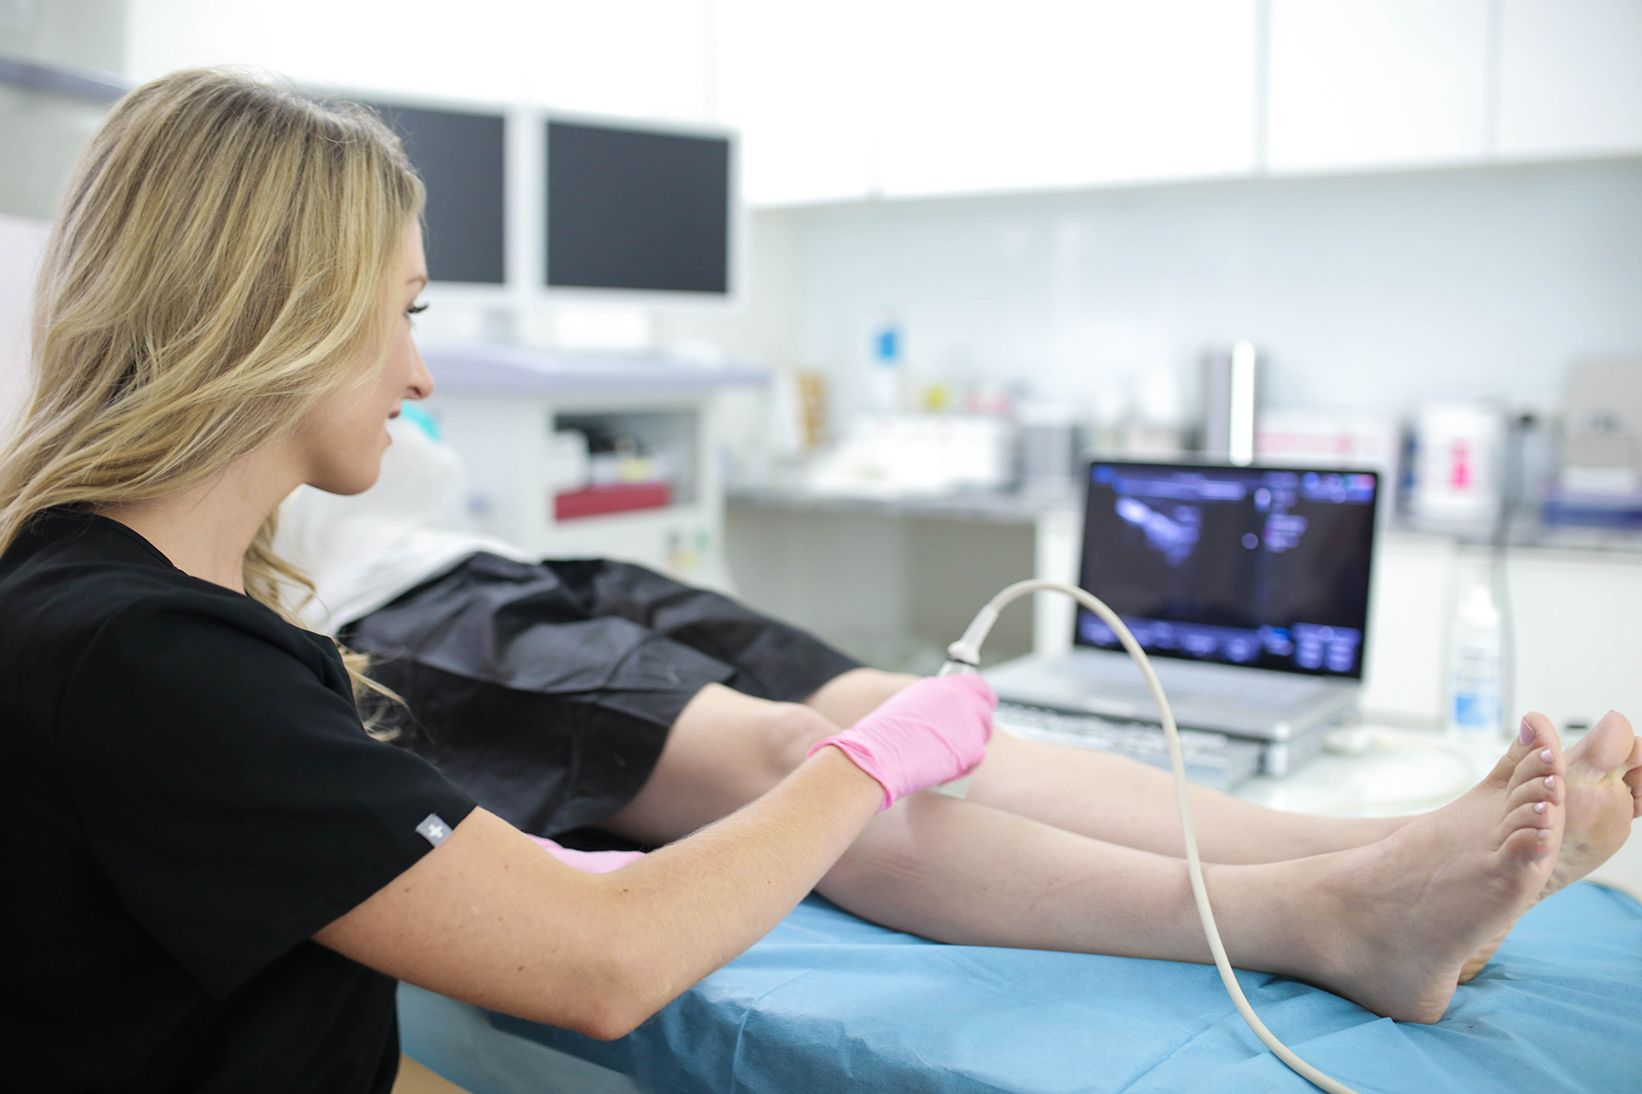 There are many ways to treat varicose veins and spider veins. Find out what your best treatment options are today at a top vein center, NYC in 2020.